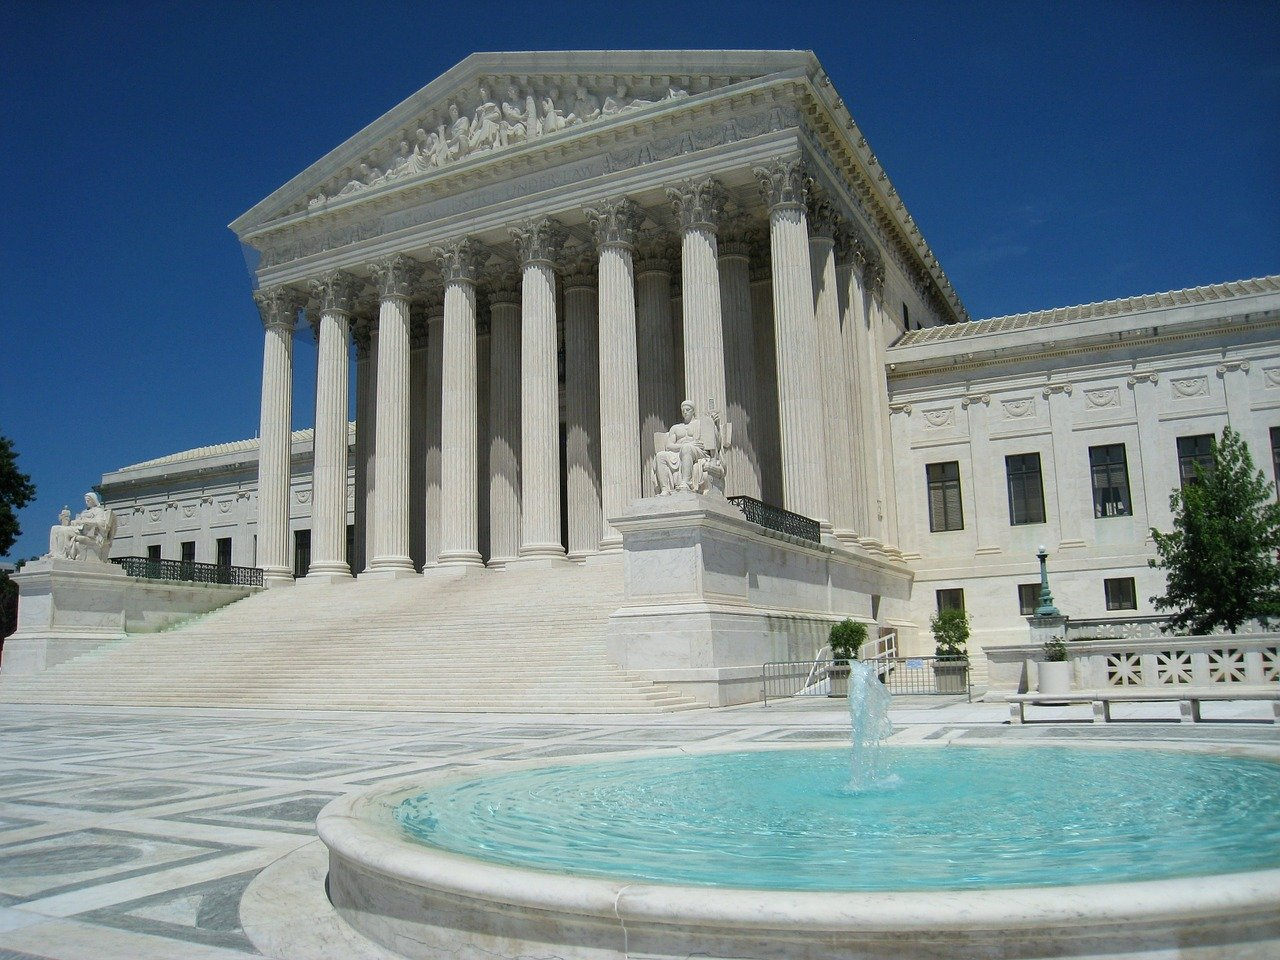 Supreme Court rules asylum seekers cannot obtain review under federal habeas statute